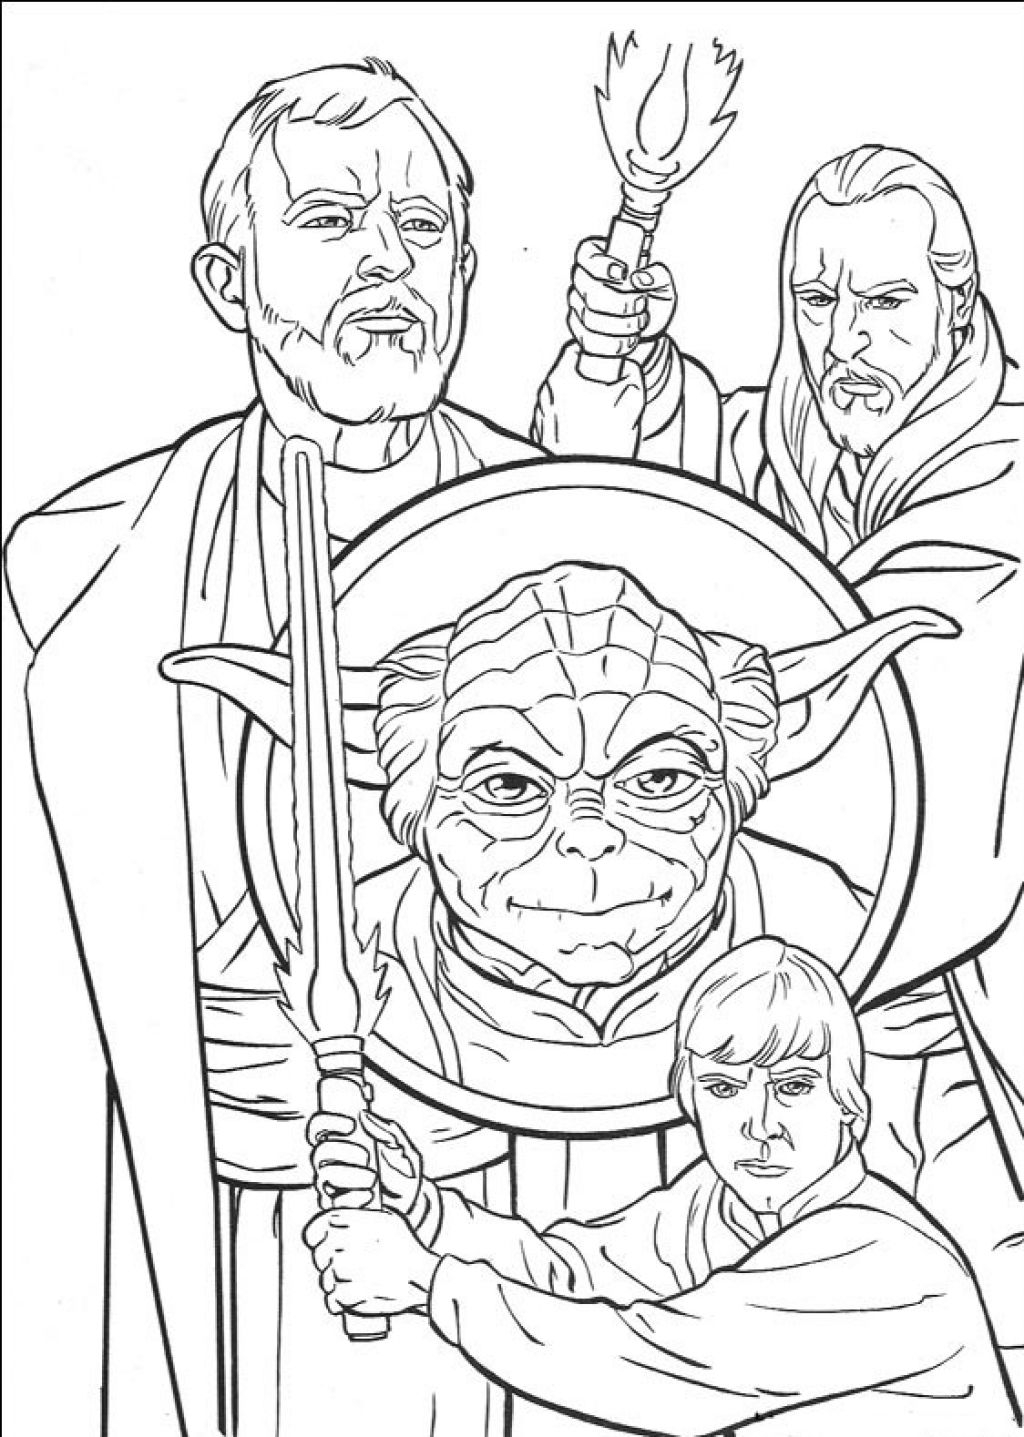 Star Wars Characters Coloring Pages Gallery